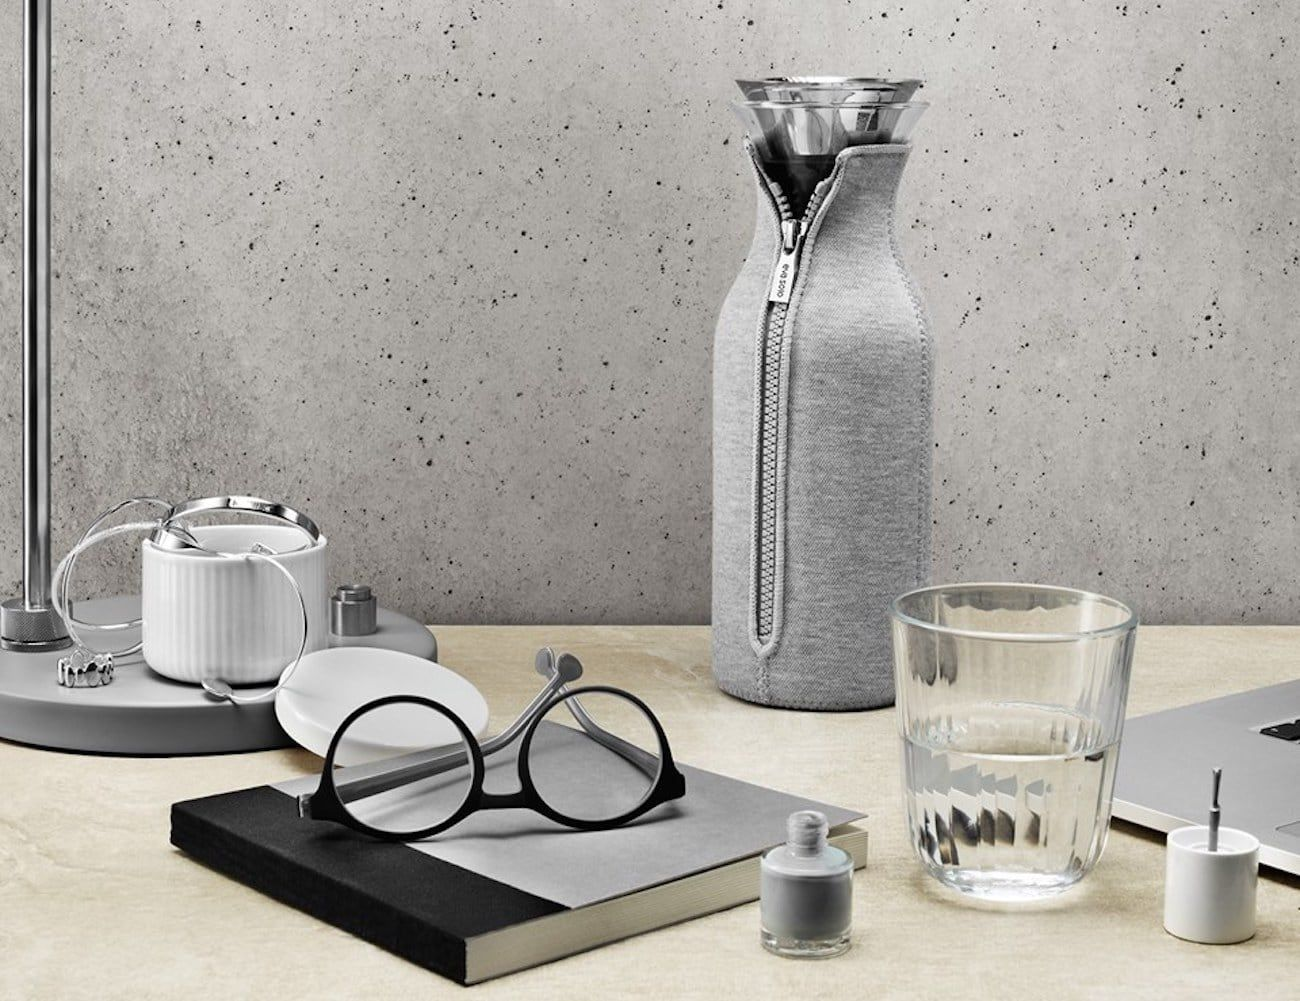 Eva Solo Cafesolo Coffee Maker comes with its own